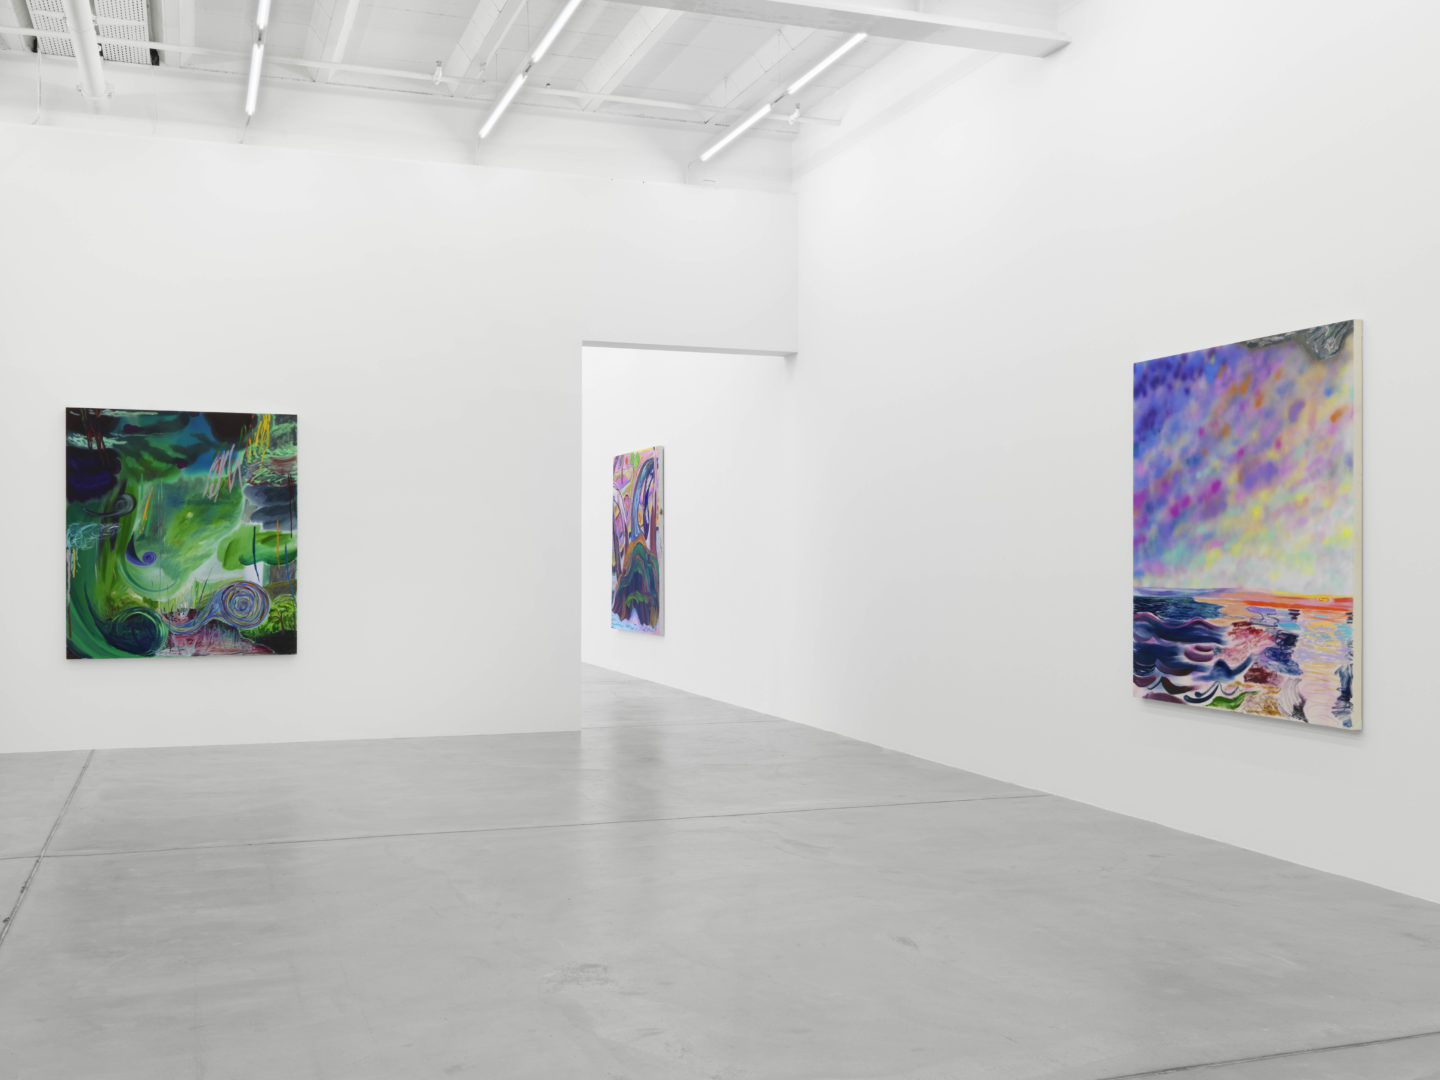 Exhibition View Shara Hughes «Don't Hold Your Breath» at Galerie Eva Presenhuber, Zurich / Photo: Stefan Altenburger / Courtesy the artist and Galerie Eva Presenhuber